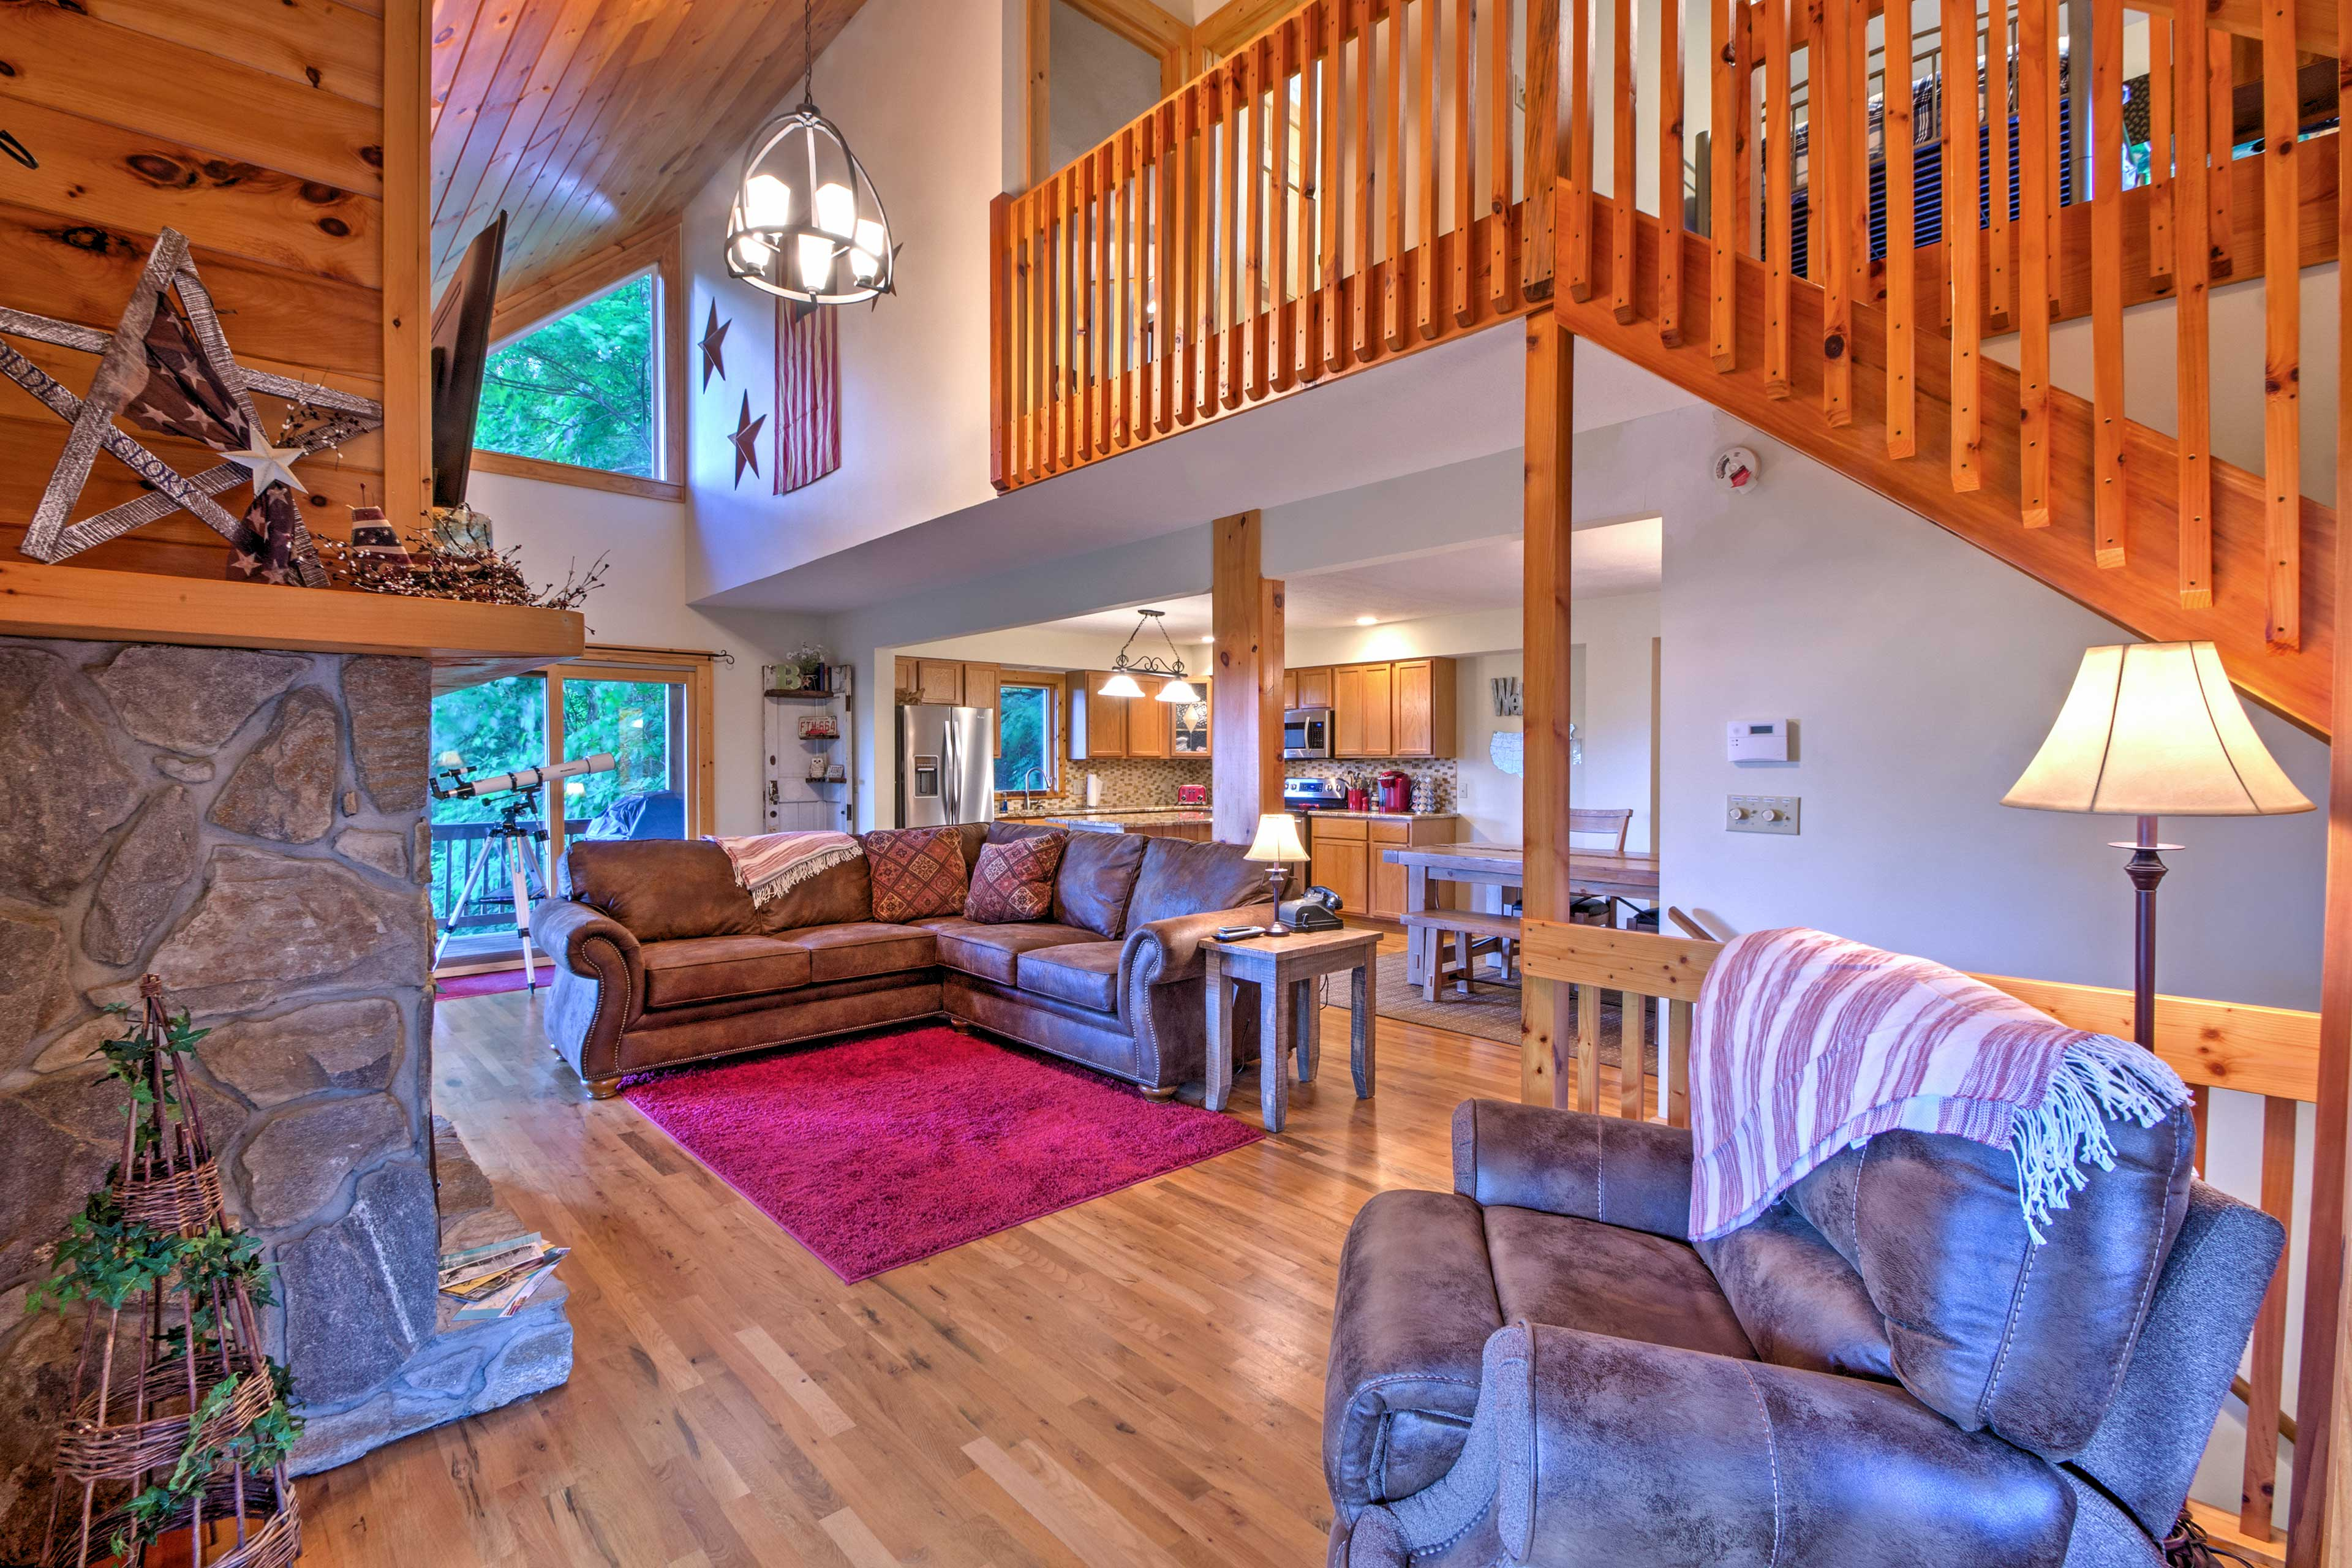 Unique decor and knotty pine accents add the the rustic ambiance.